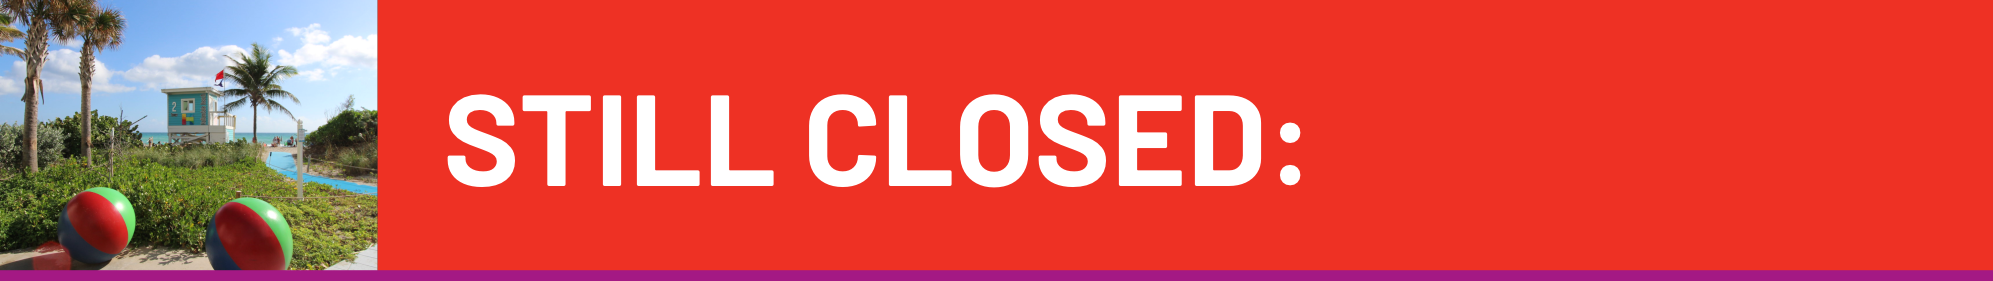 STILL CLOSED: